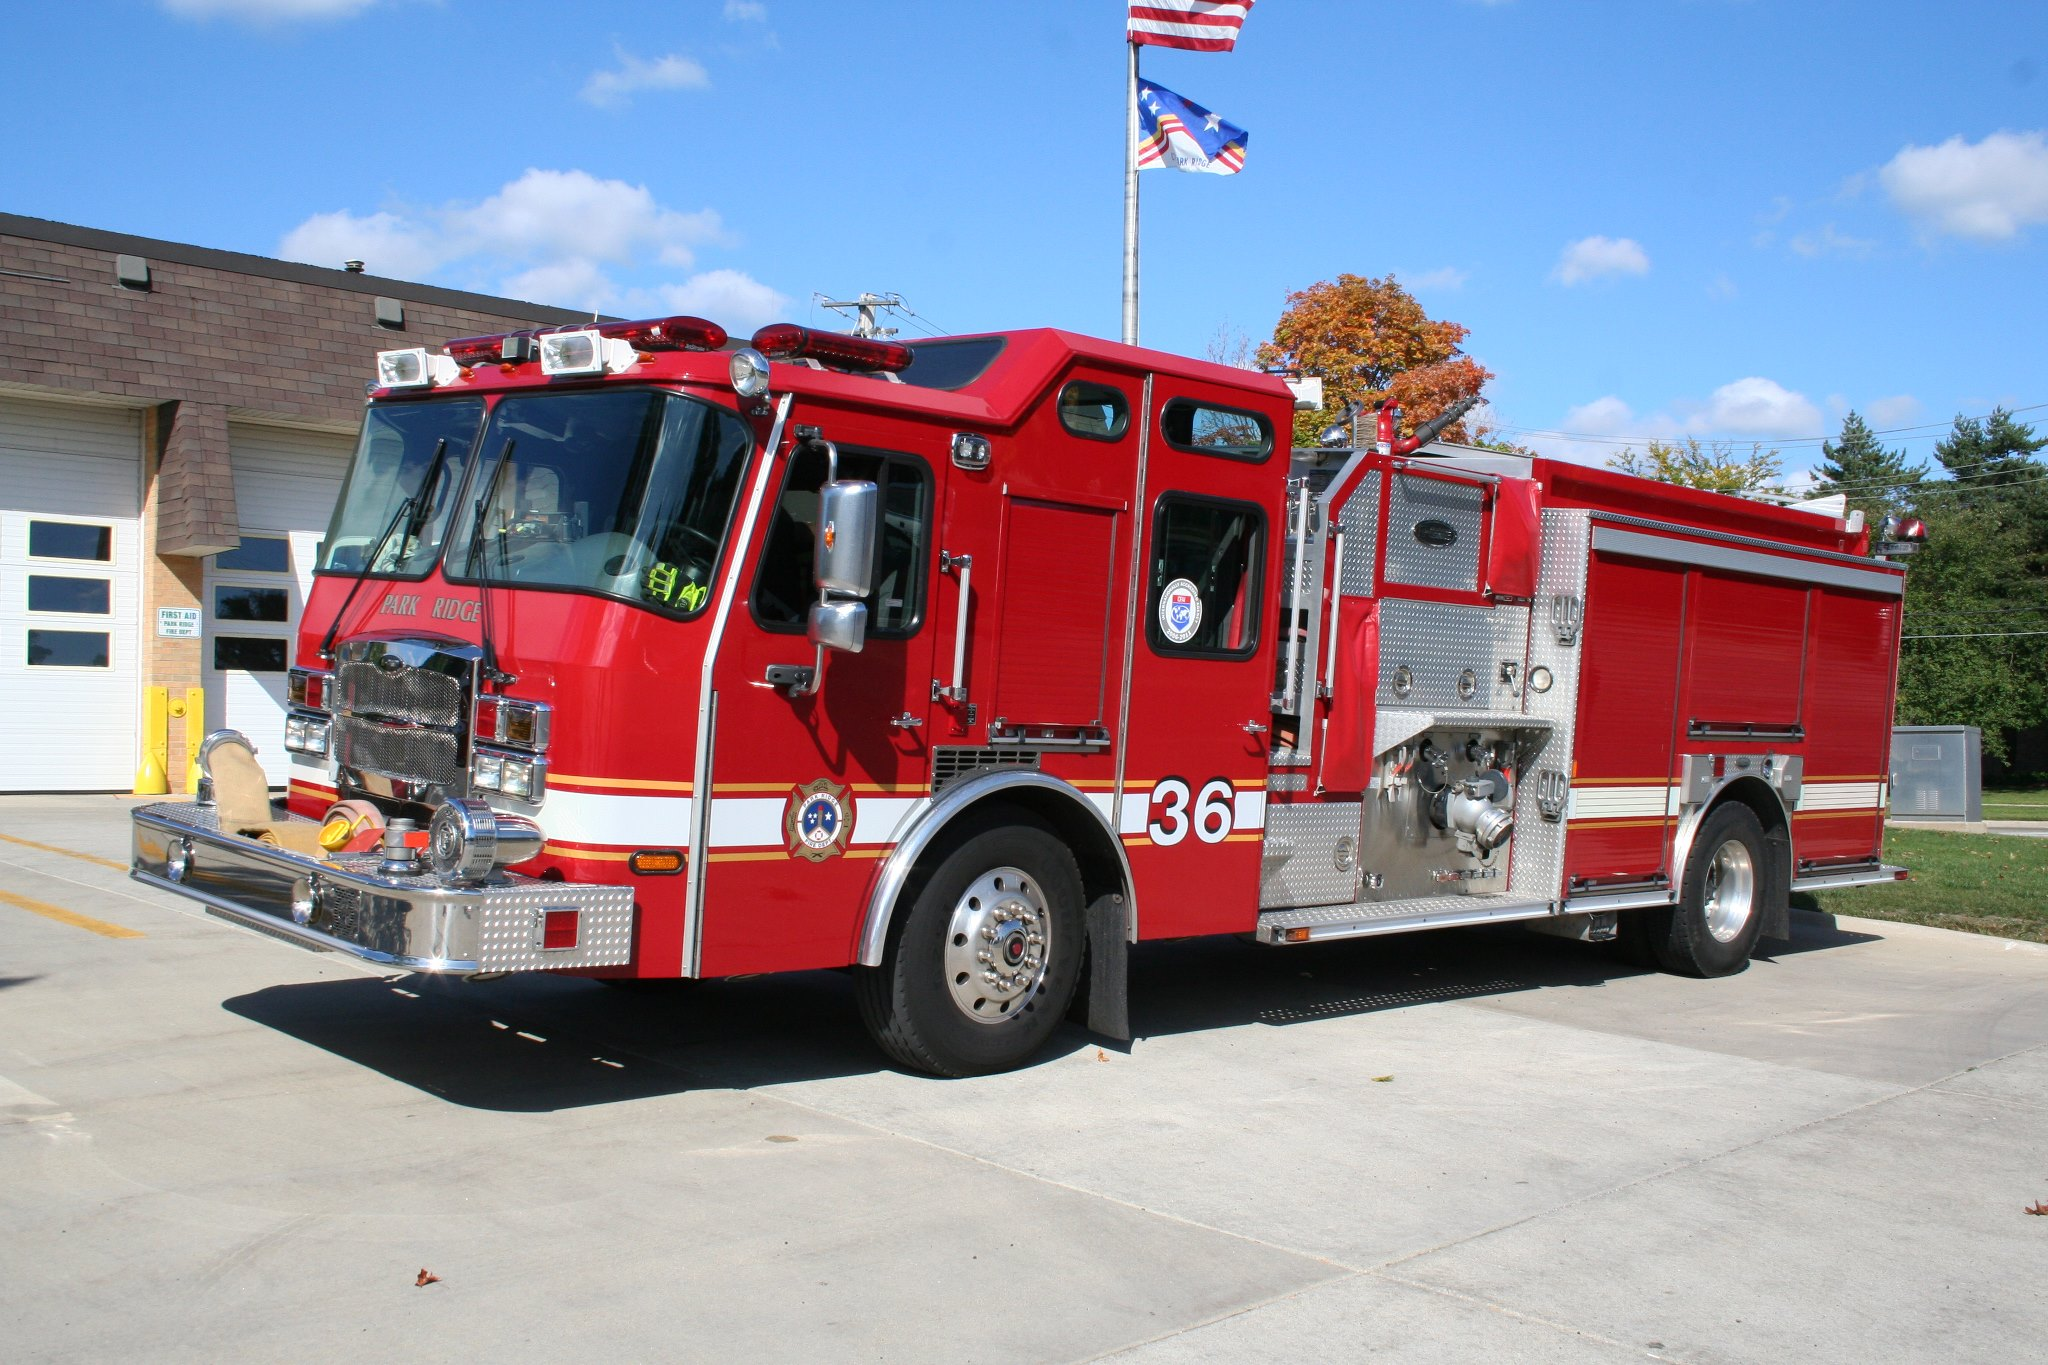 A fire injured two people in Park Ridge.